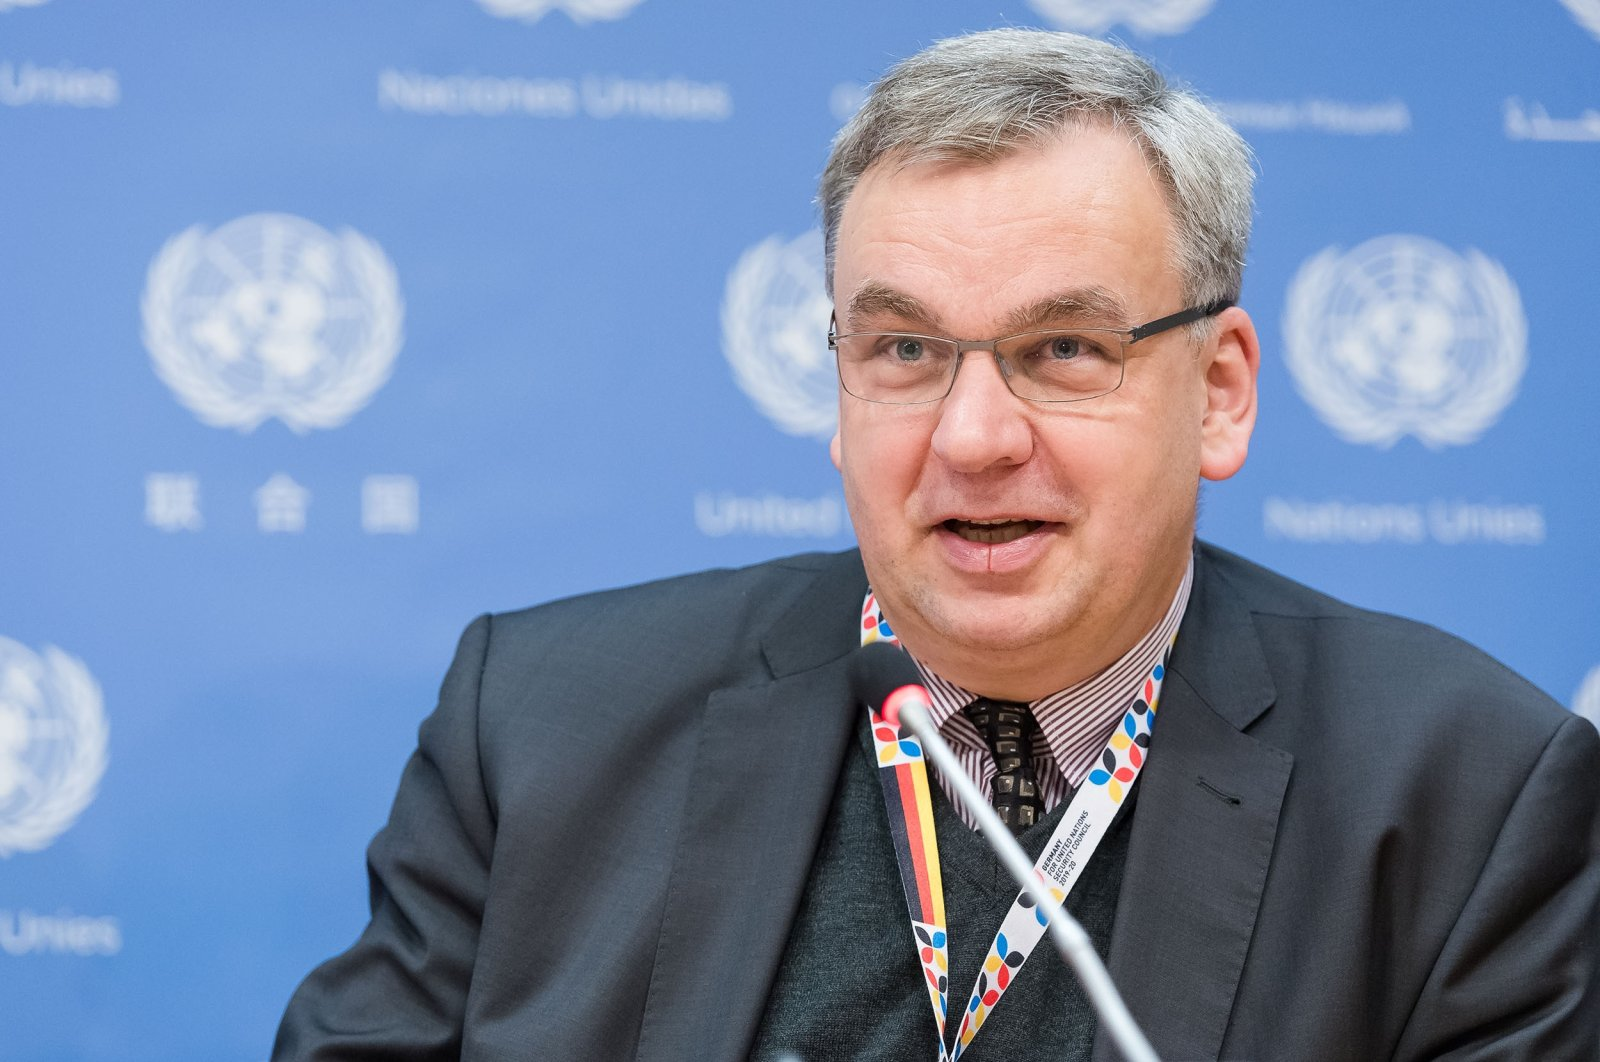 Jurgen Schulz, Germany's ambassador to Ankara, is seen at a press conference at the United Nations Headquarters in New York, March 6, 2017. (Getty Images)